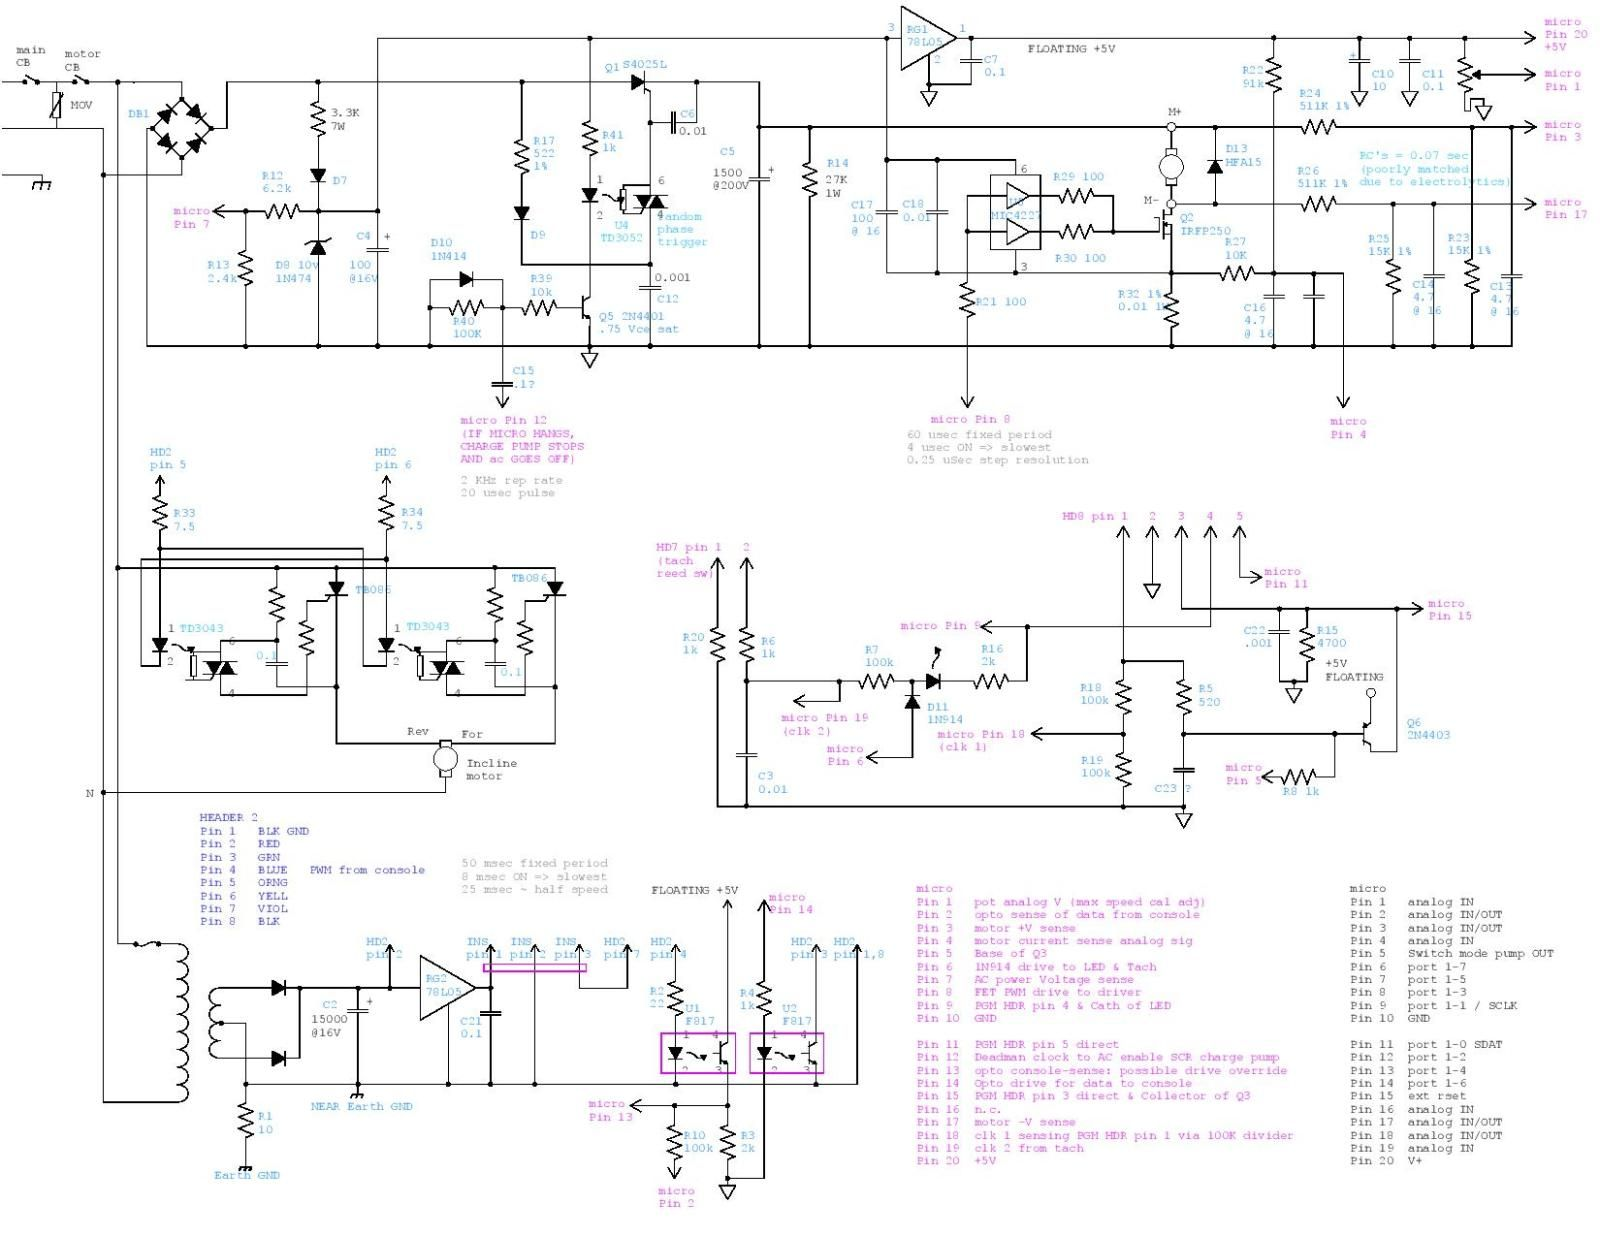 mc2100 treadmill motor control circuit and wiring at diagram precor treadmill wiring diagram treadmill wiring diagram [ 1600 x 1236 Pixel ]